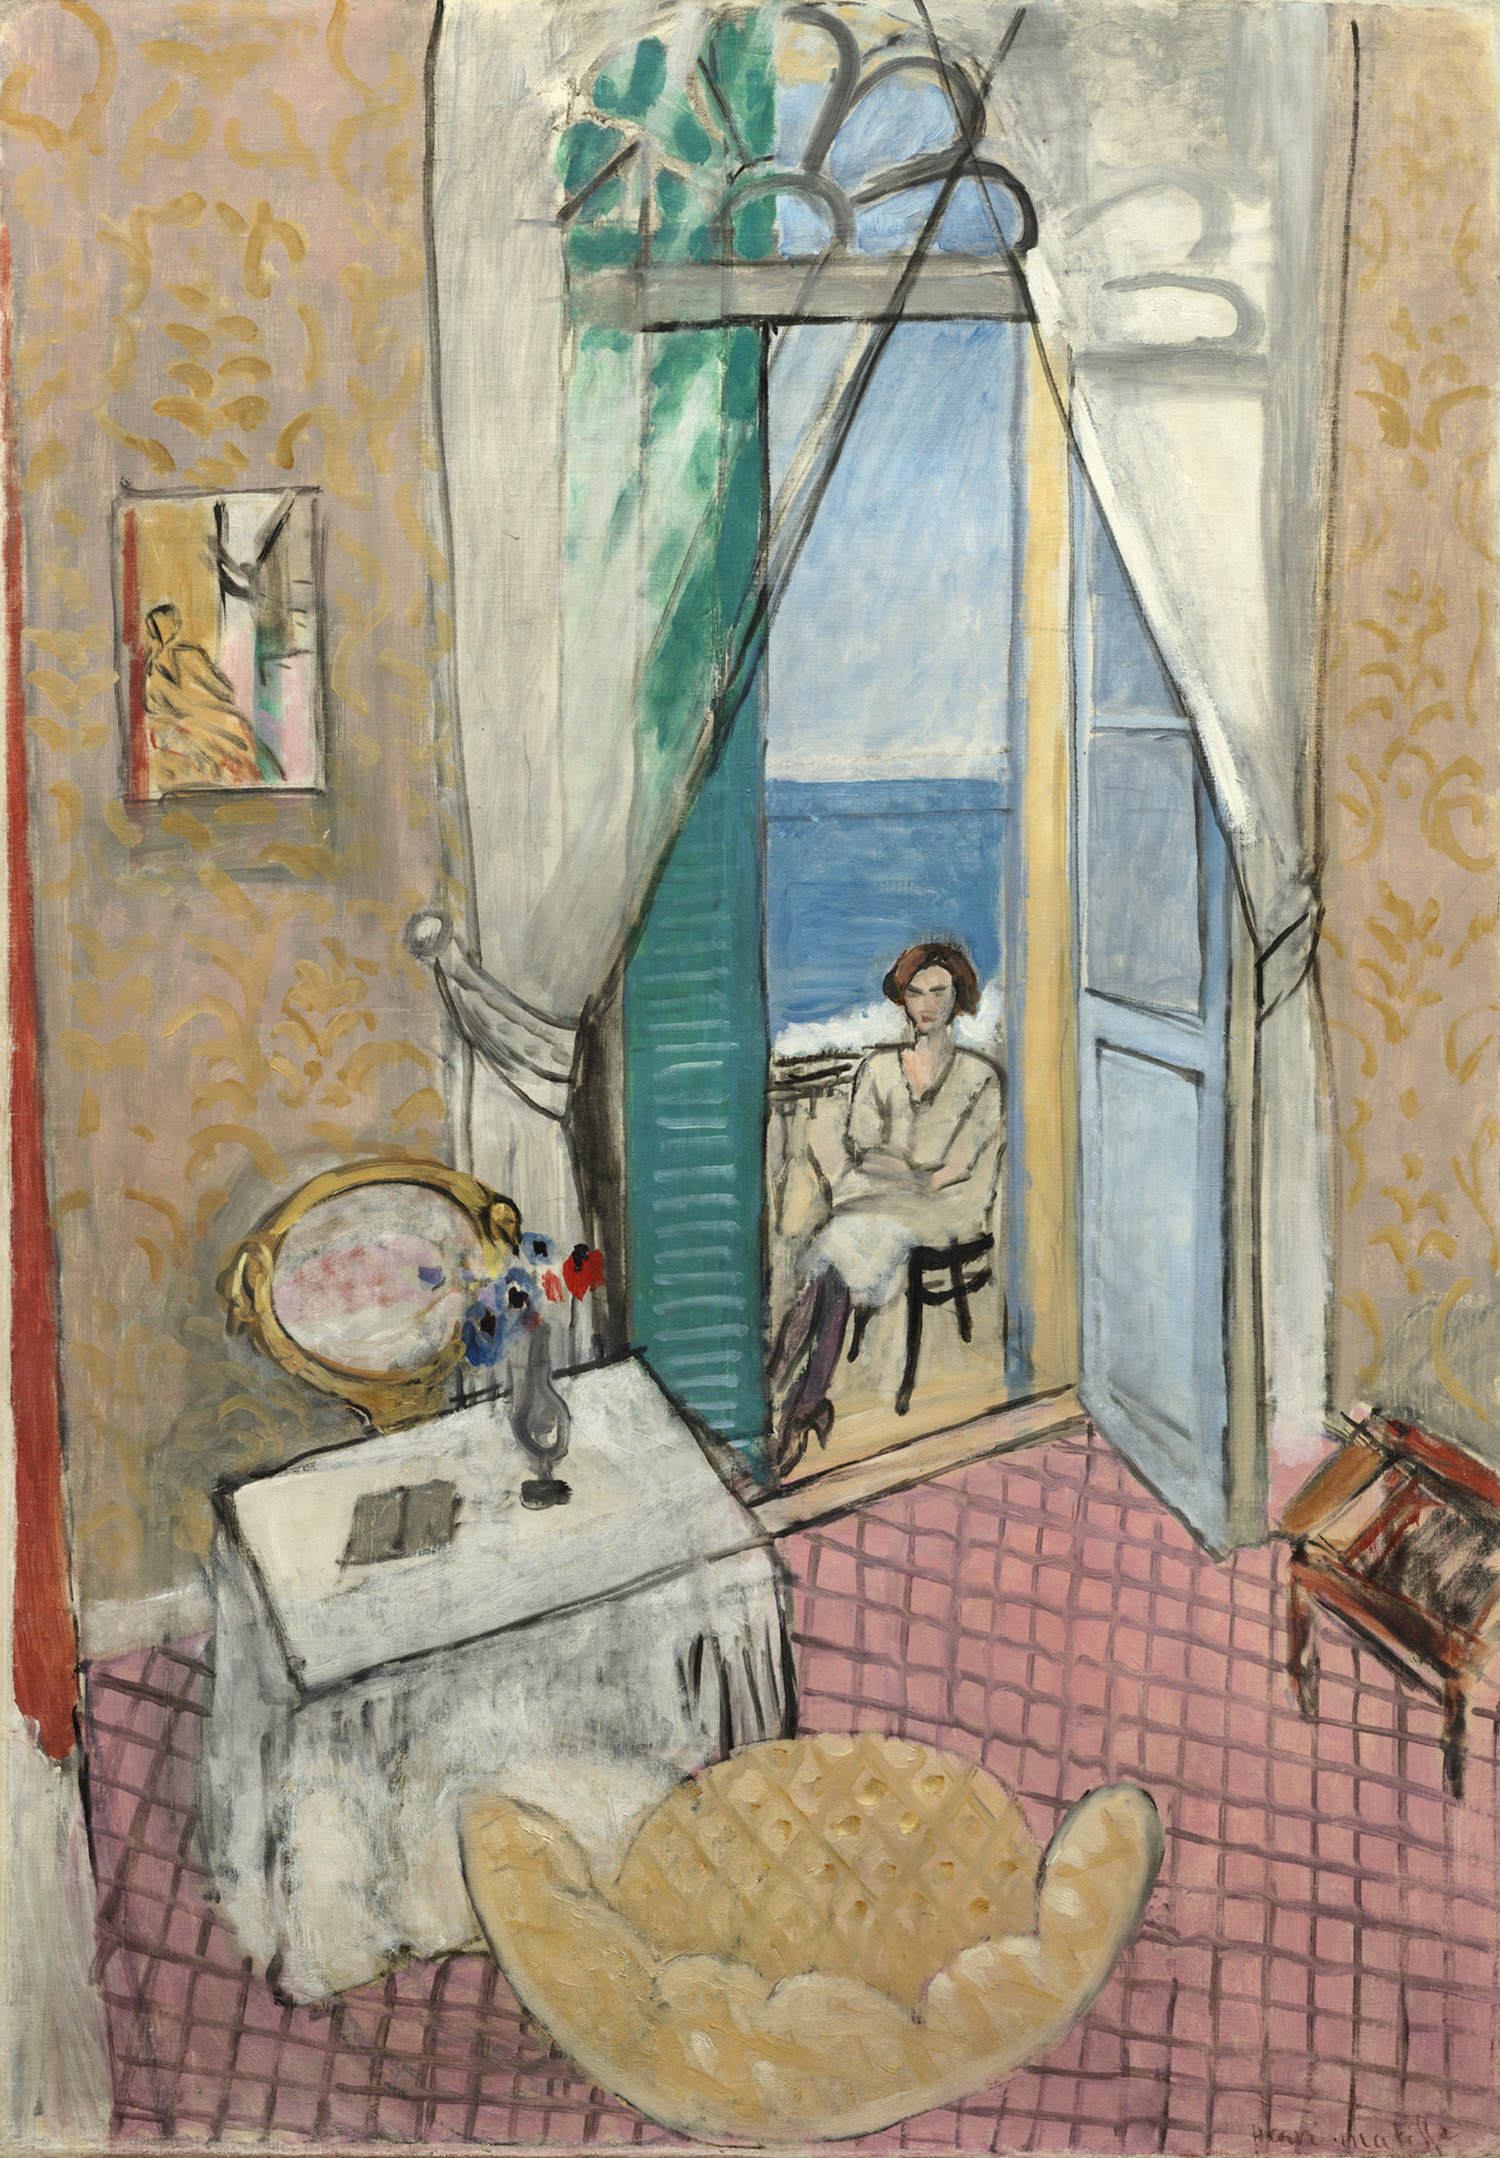 7. Henri Matisse, Interior at Nice, 1919; oil on canvas; the Art Institute of Chicago; © Succession H. Matisse / Artists Rights Society (ARS), New York.